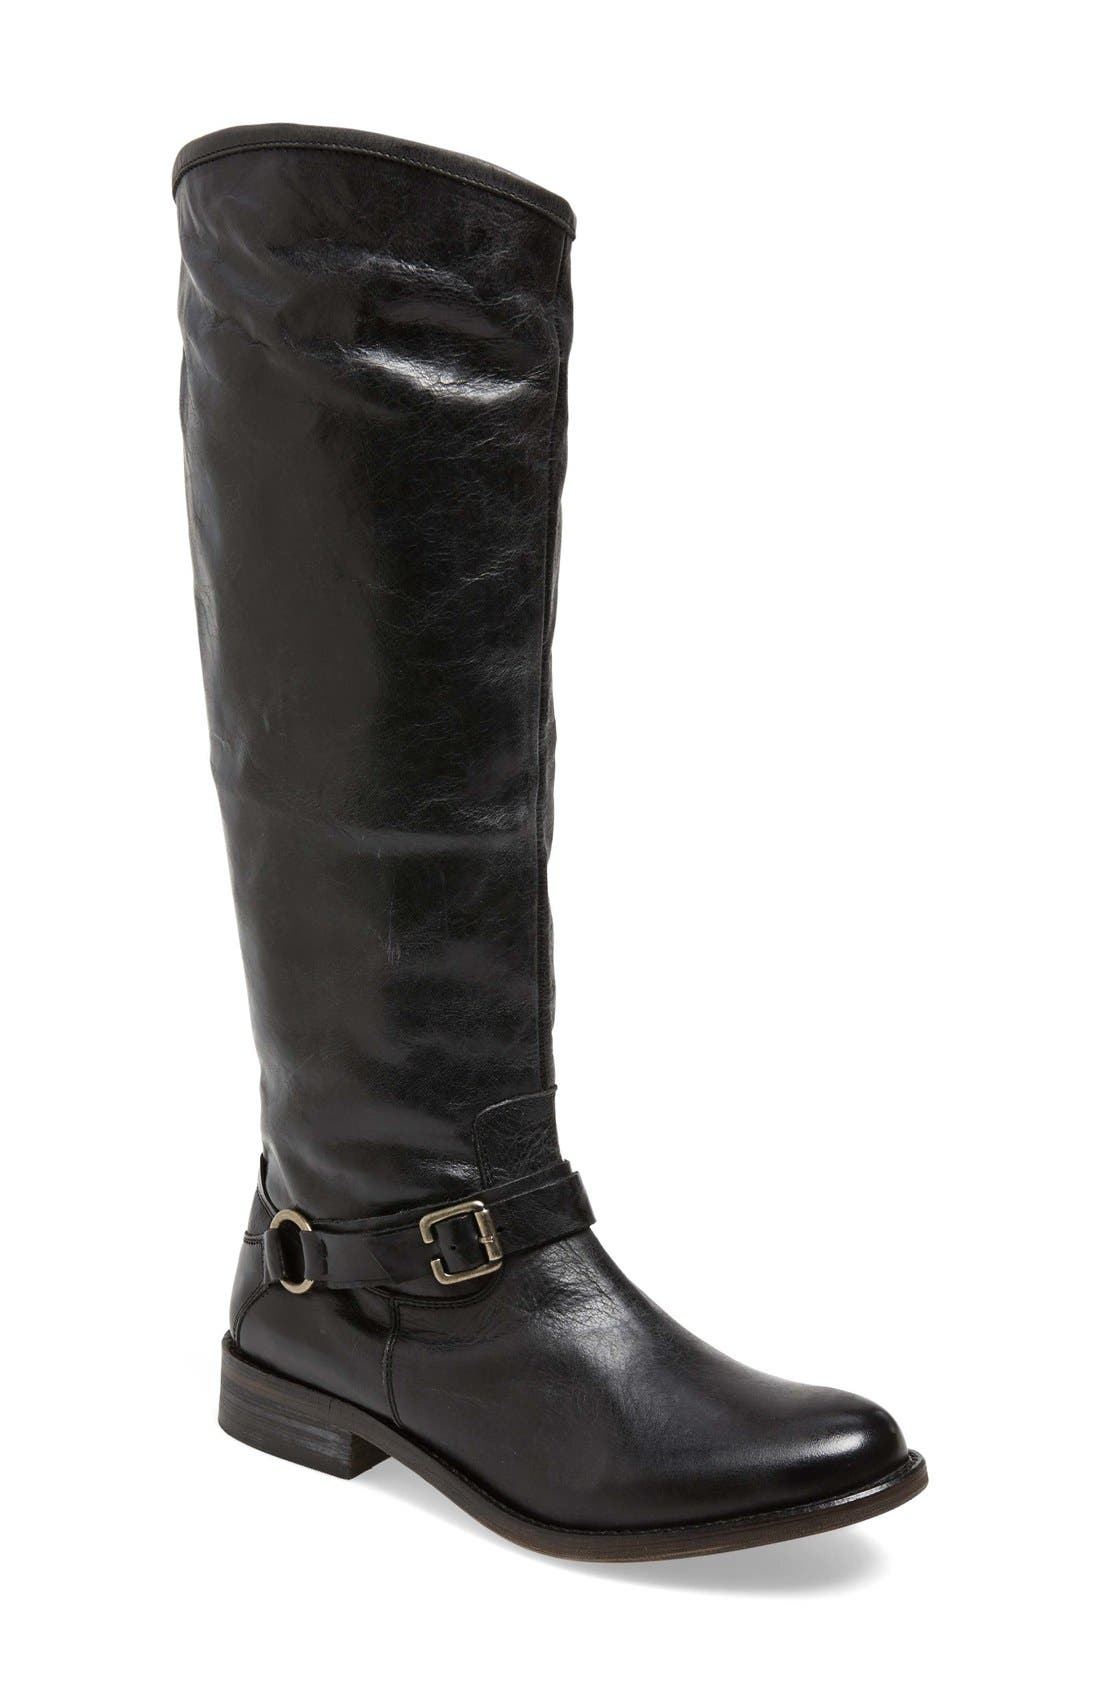 Main Image - Hinge 'Dakotah' Knee High Riding Boot (Women)